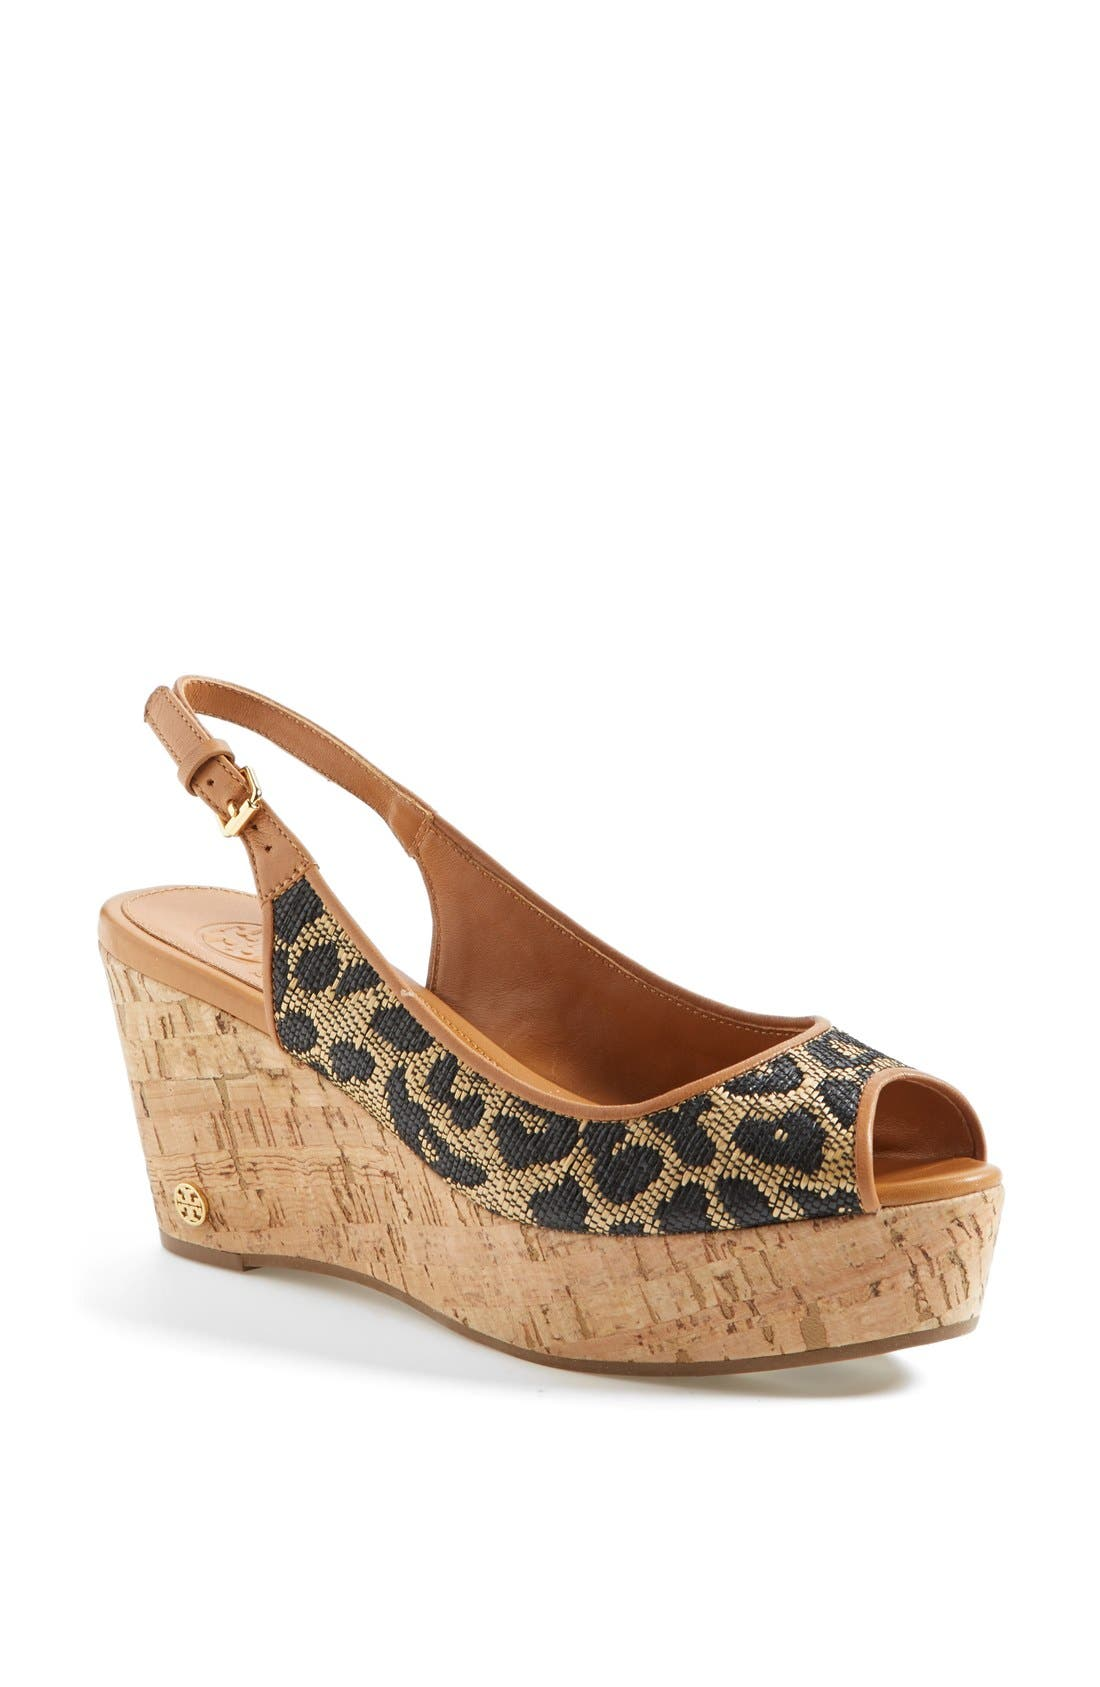 Main Image - Tory Burch 'Rosalind' Wedge Sandal (Online Only)